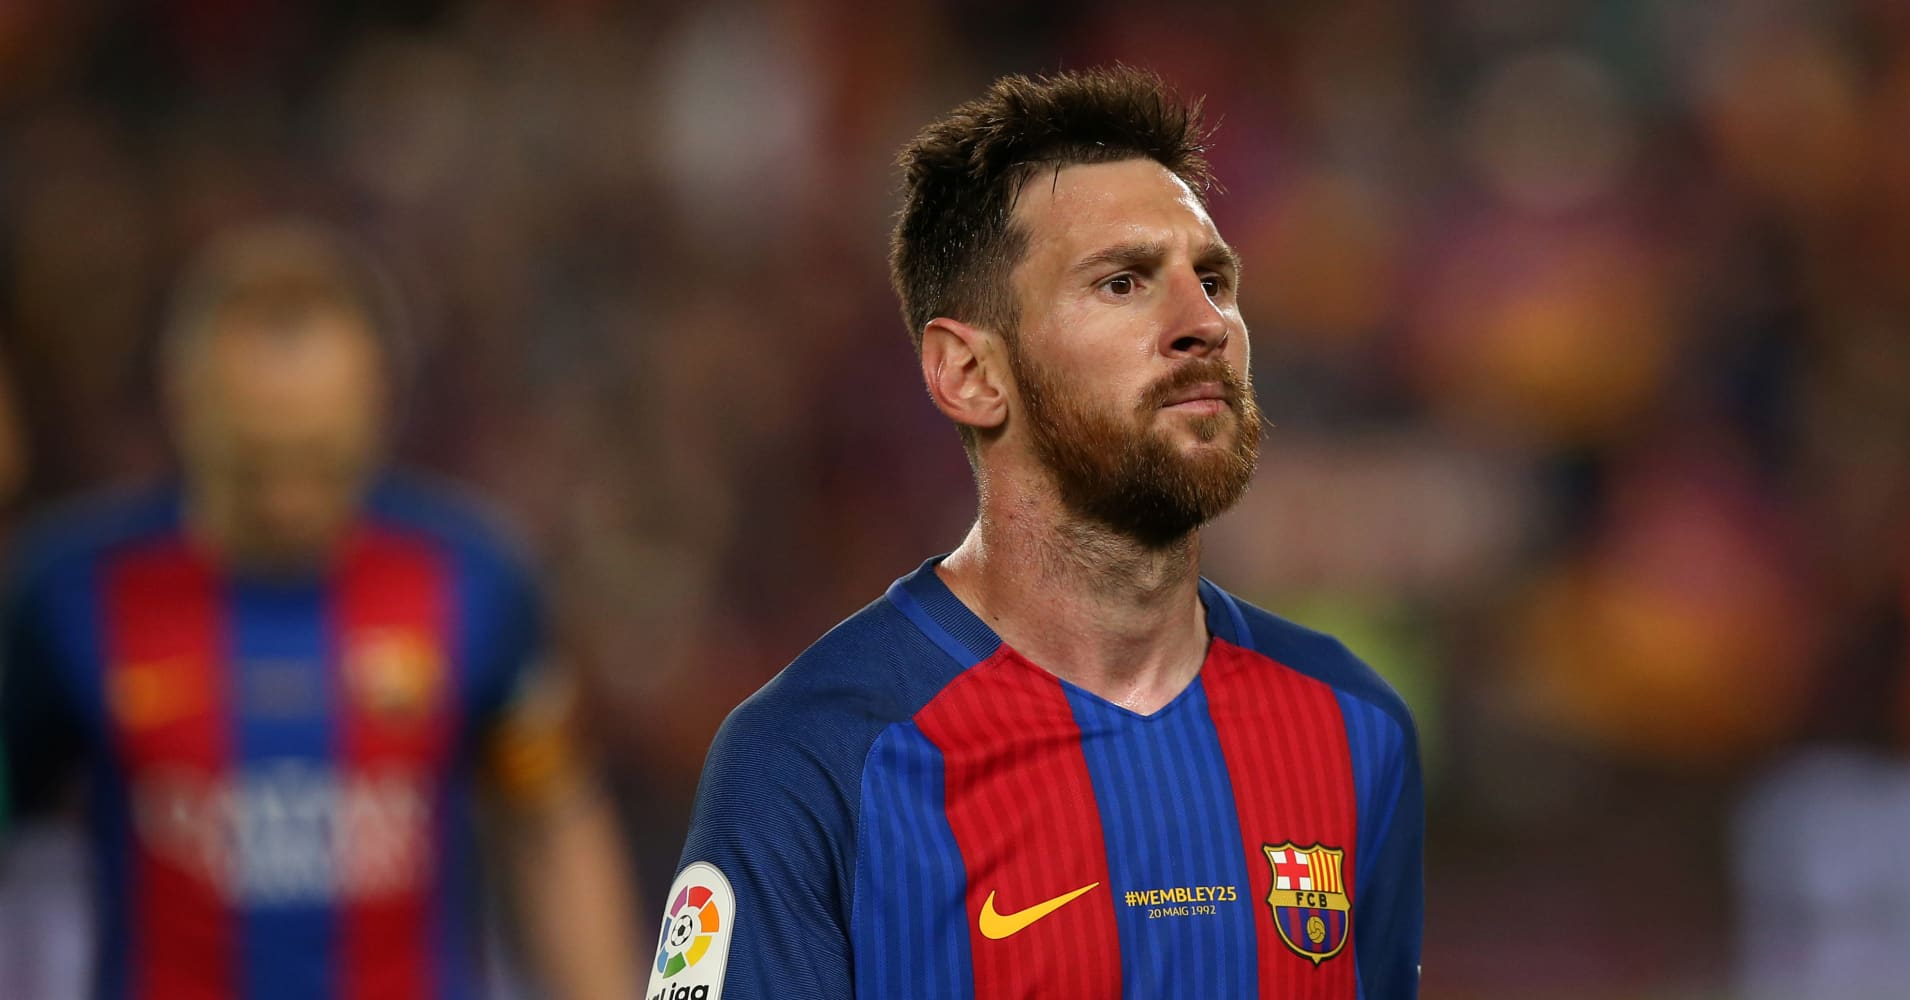 Spain Supreme Court ratifies Messi's prison sentence after appeal